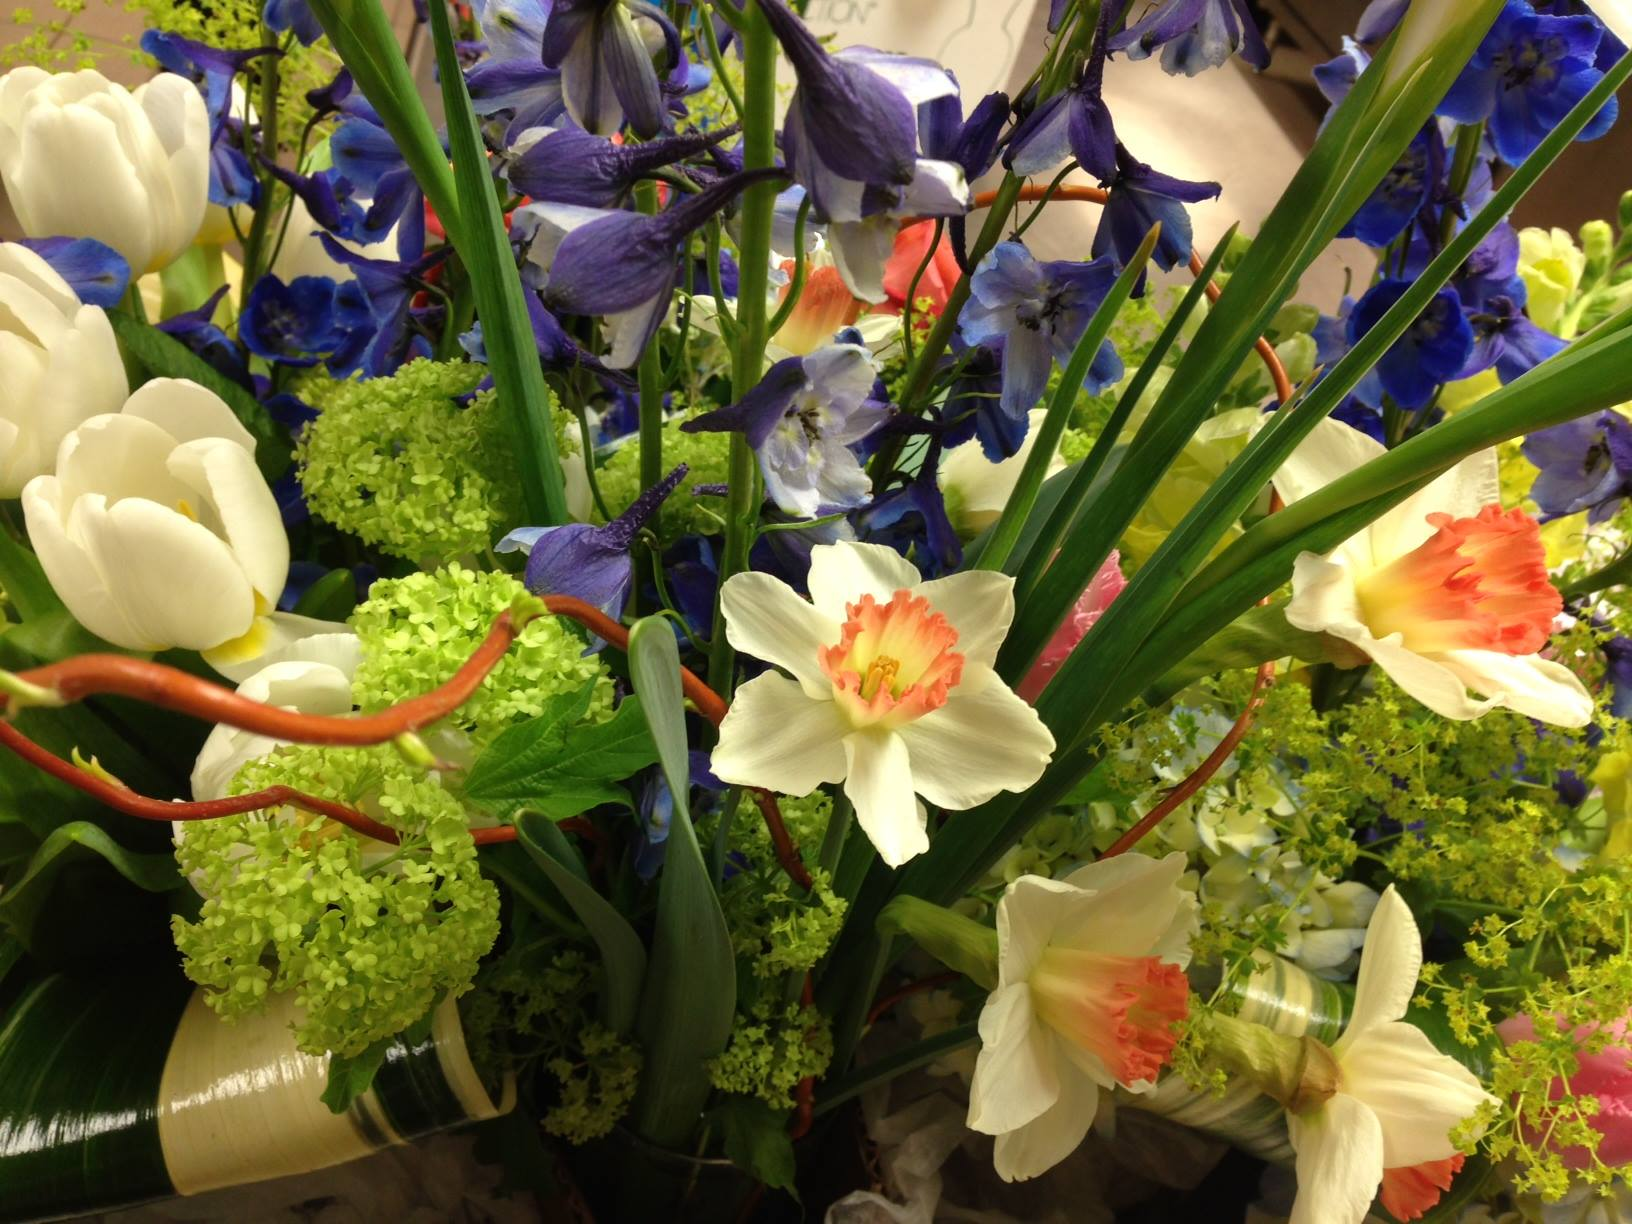 A beautiful mix of Irises, Tulips, and Daffodils